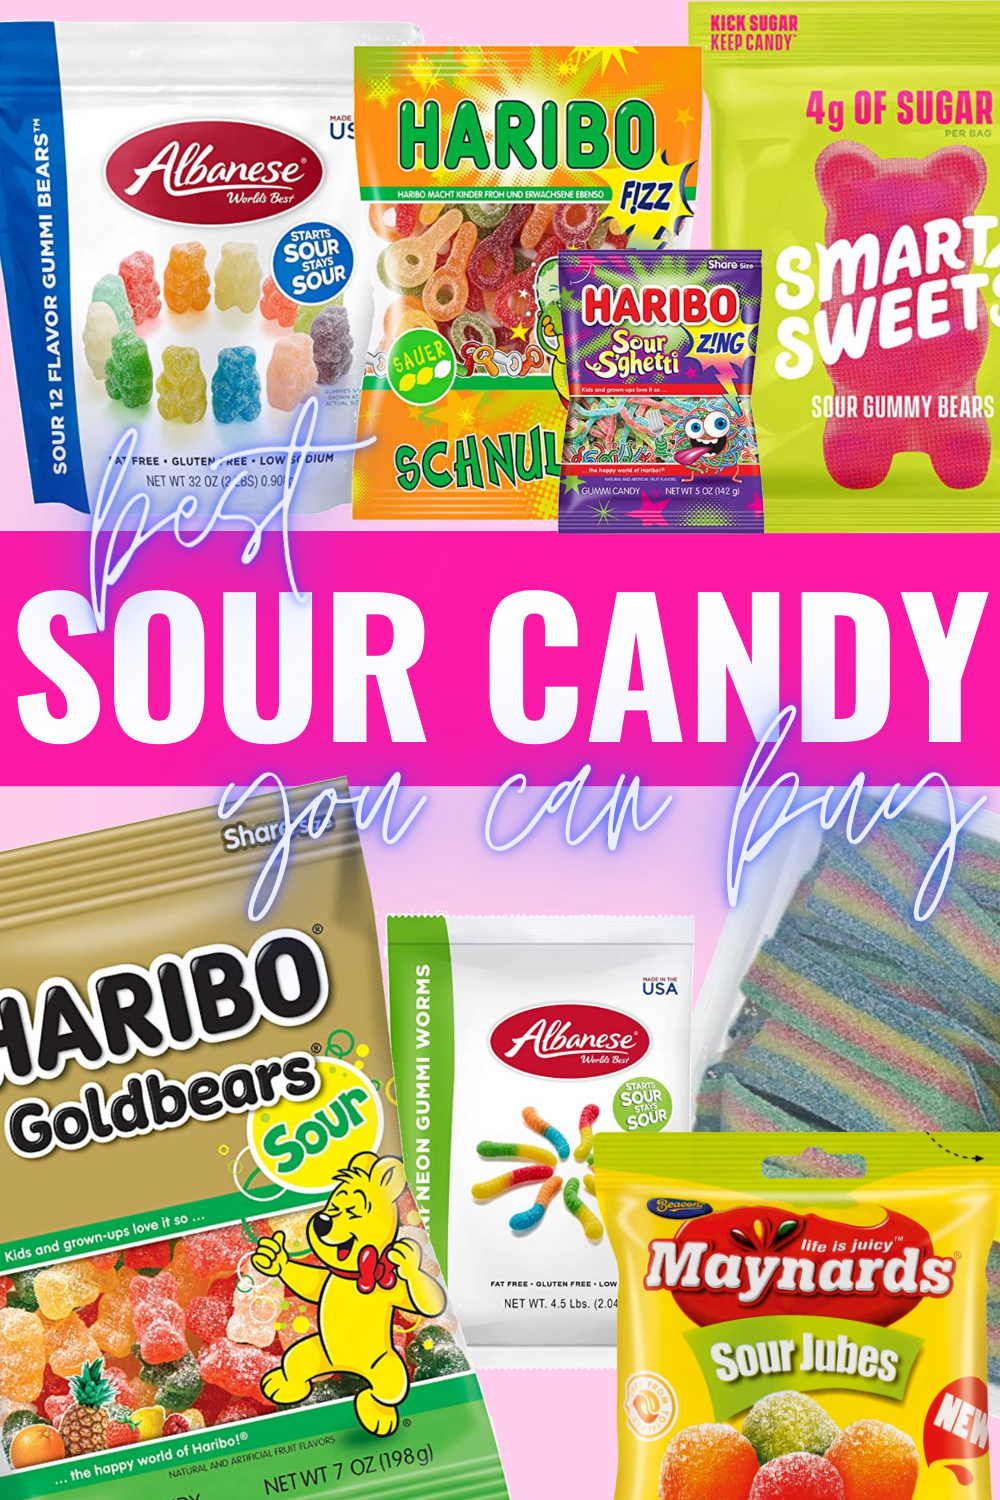 The Best Sour Candy You Can Buy + Where To Find It - Are you a sour candy lover? I've been a candy connoisseur since childhood + I'm sharing where to find the best sour candy! | Bulk Sour Candy - Most Sour Candy -Sour Belts Candy - Sour Candy Strips